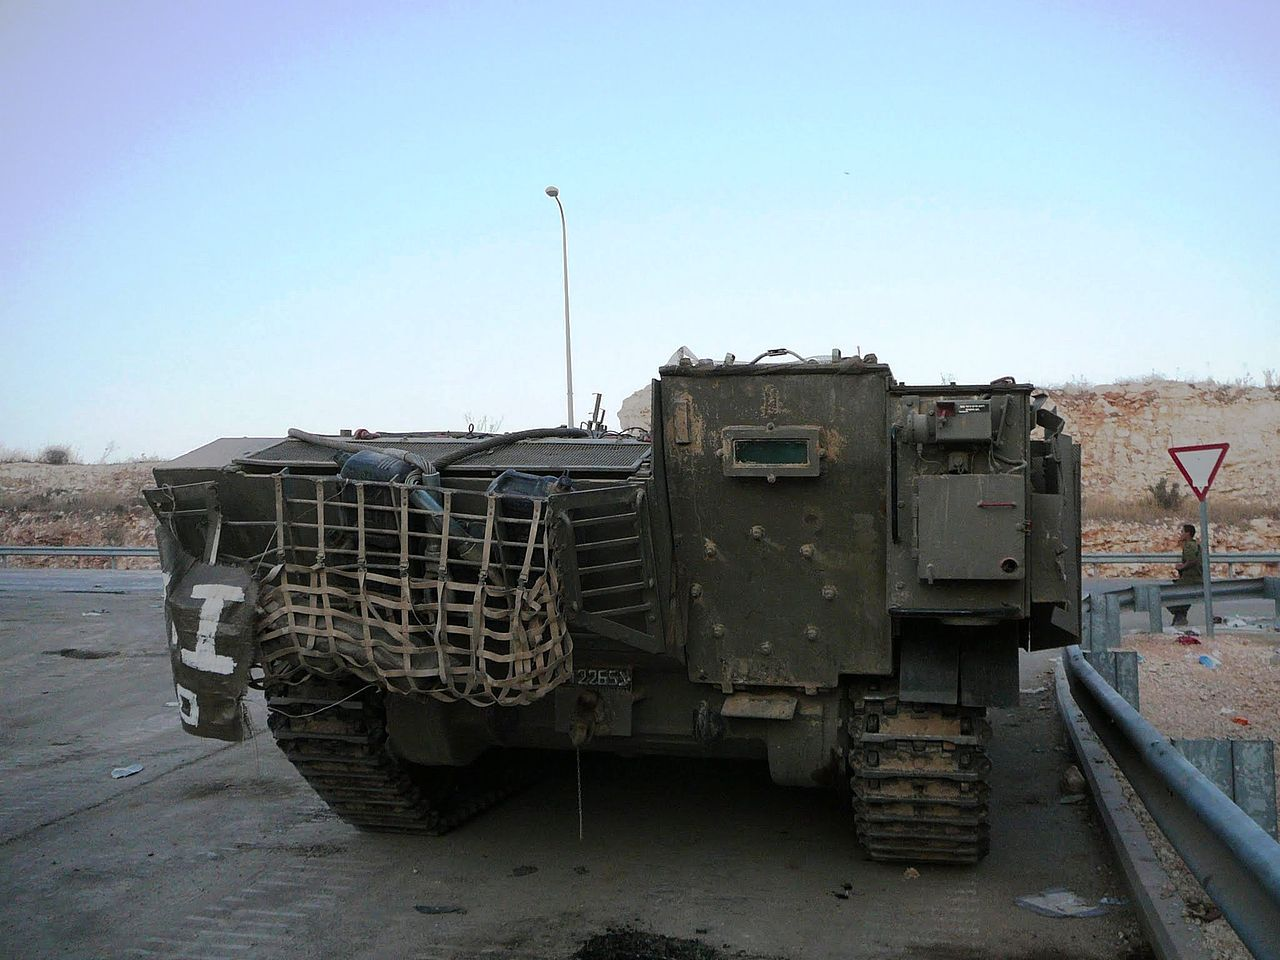 1280px-Achzarit_APC_rear_view.jpg